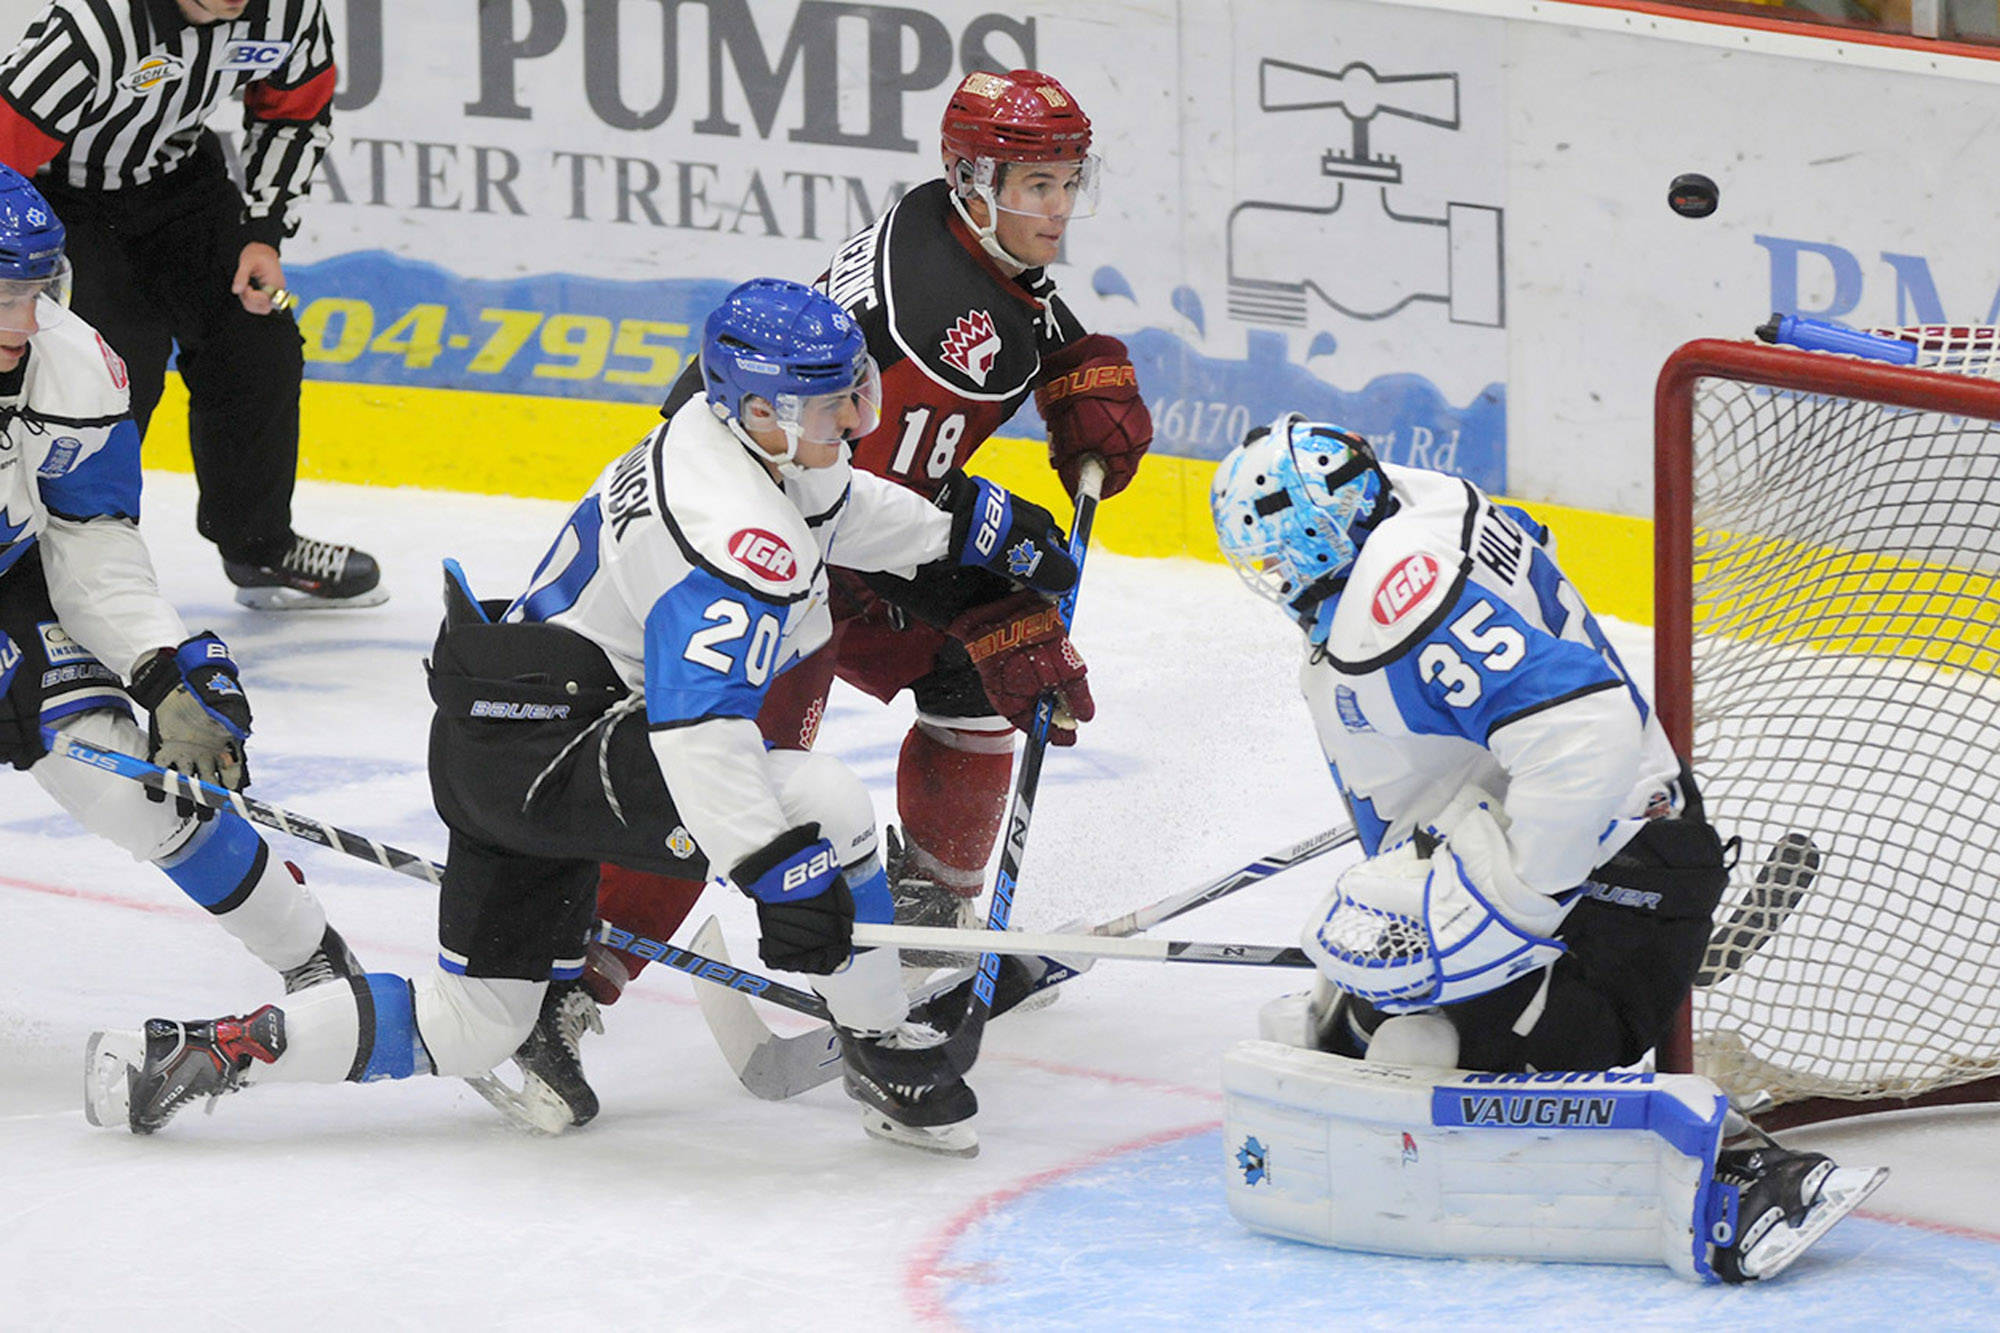 The annual BCHL Showcase is slated to return Oct. 2 through 5, but revamped as 2019 BCHL Showcase Festival. Part of the changes this year includes adding Penticton as a second host city for the Interior teams. Jenna Hauck/Black Press